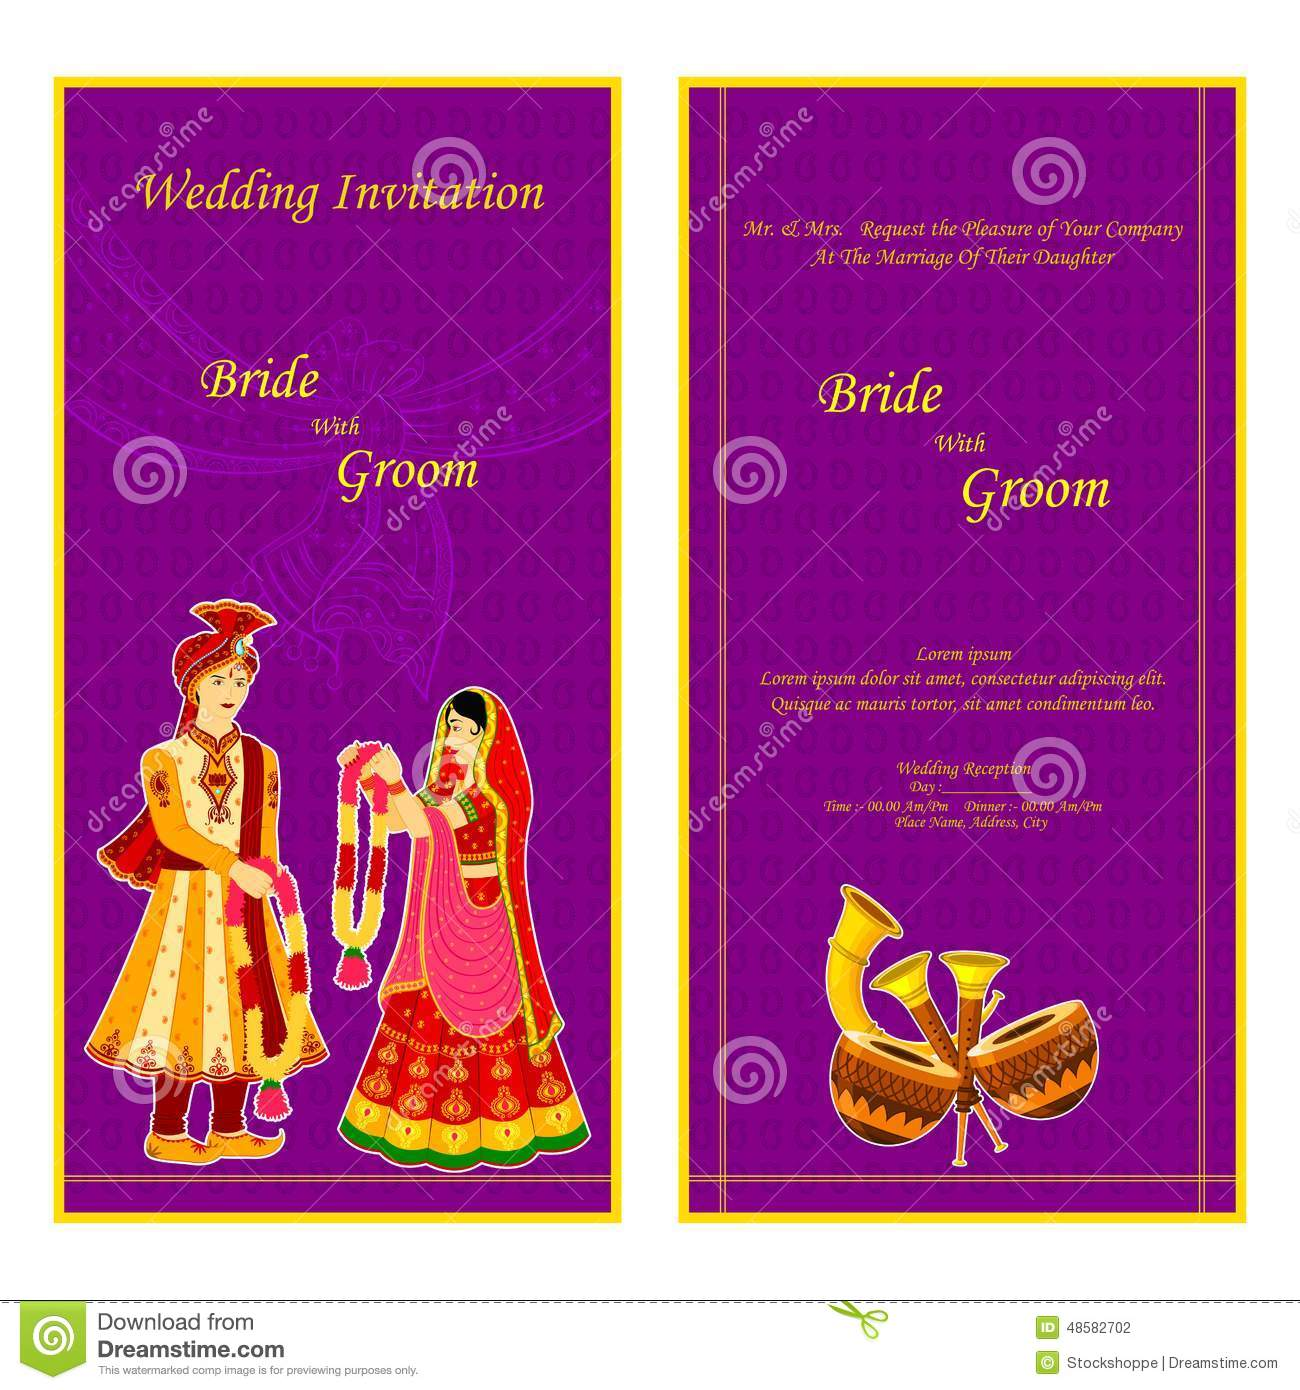 Indian Wedding Invitation Card Illustration 48582702 - Megapixl